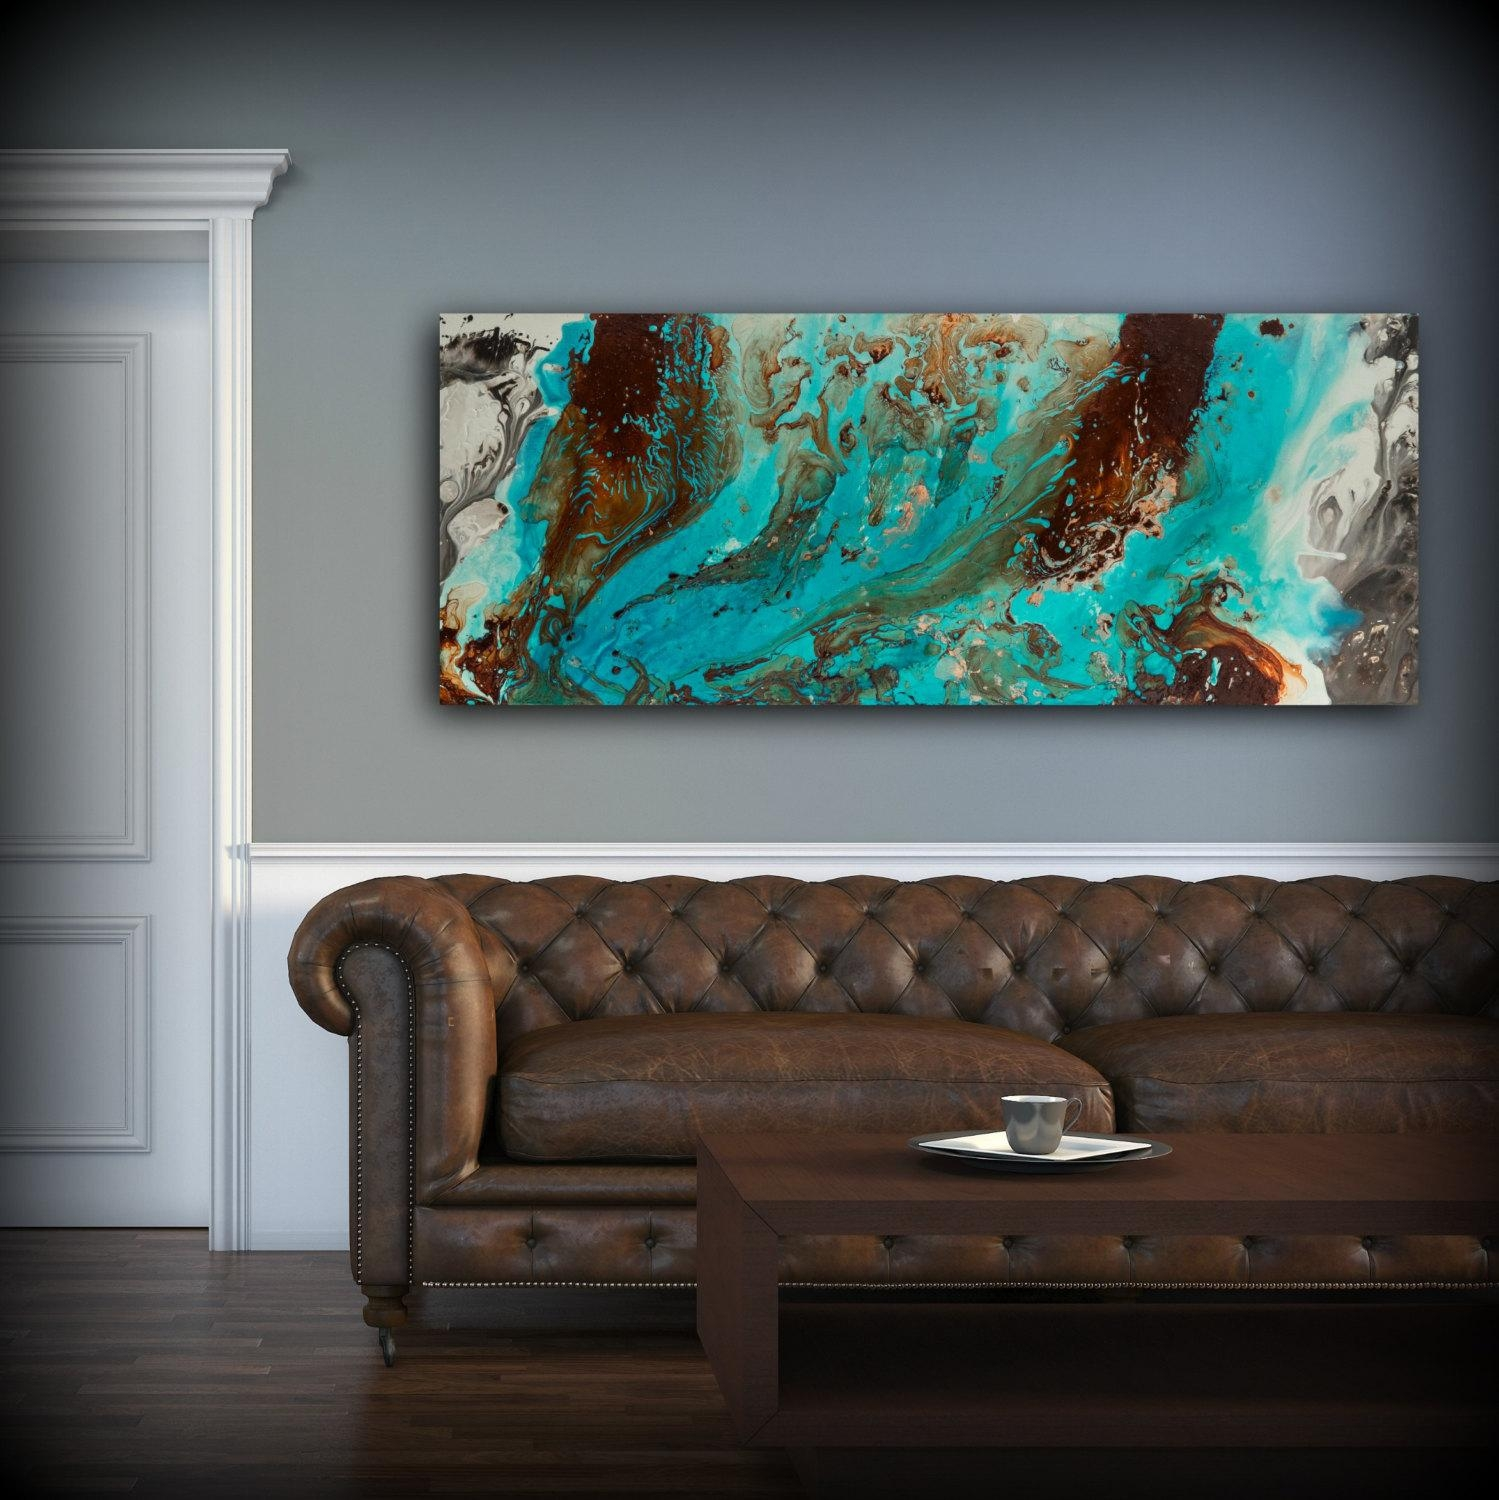 20 collection of teal and brown wall art wall art ideas for Blue and brown wall art